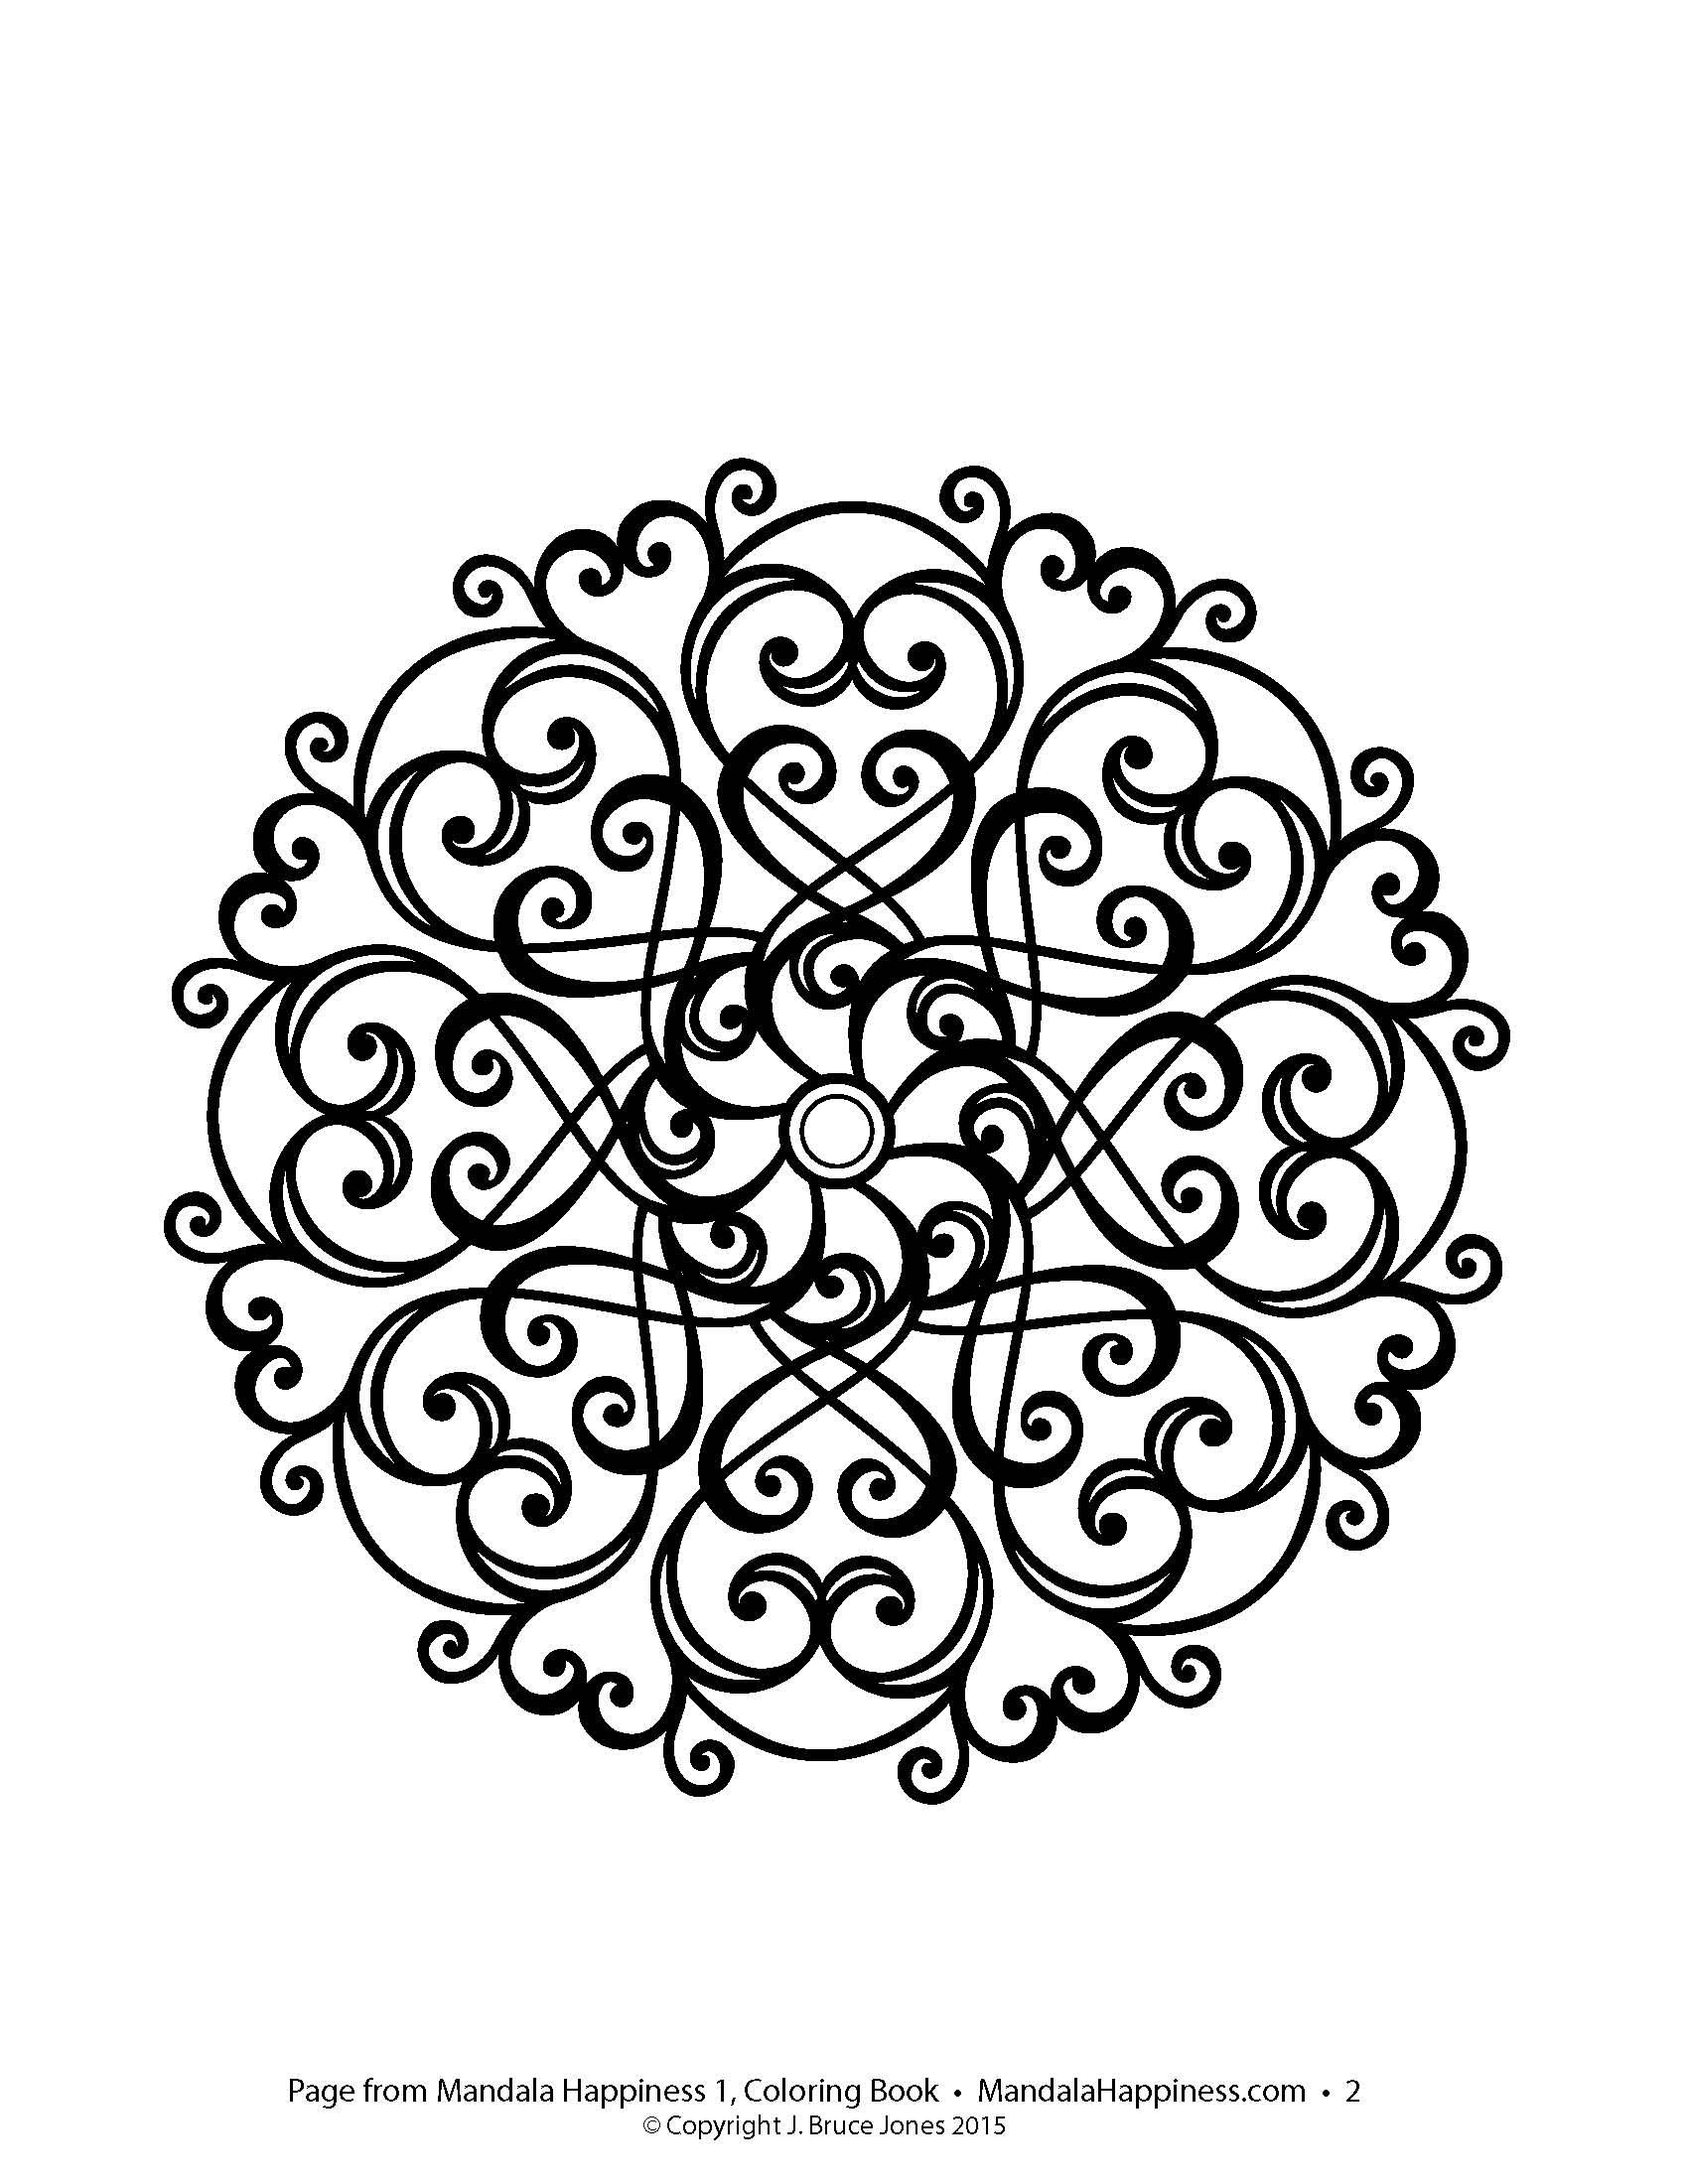 Mandala coloring pages amazon - Mandala Design From Mandala Happiness 1 Adult Coloring Book Great For Reducing Your Stress